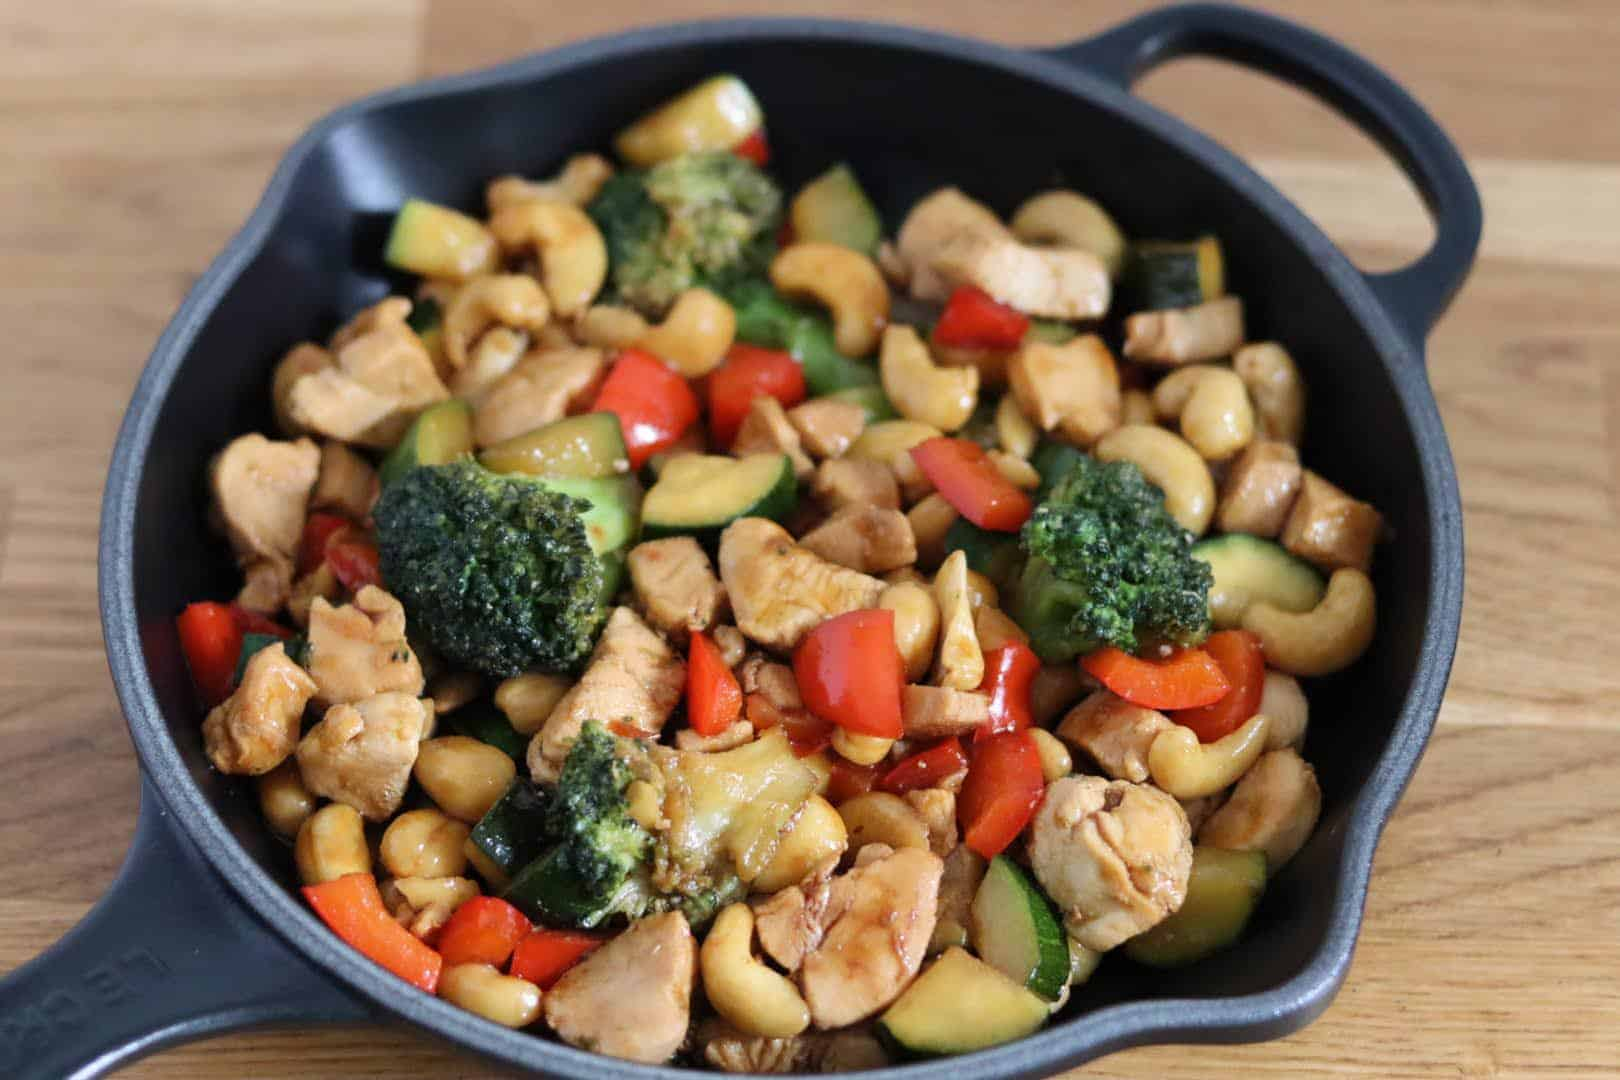 chicken stir fry in a black skillet